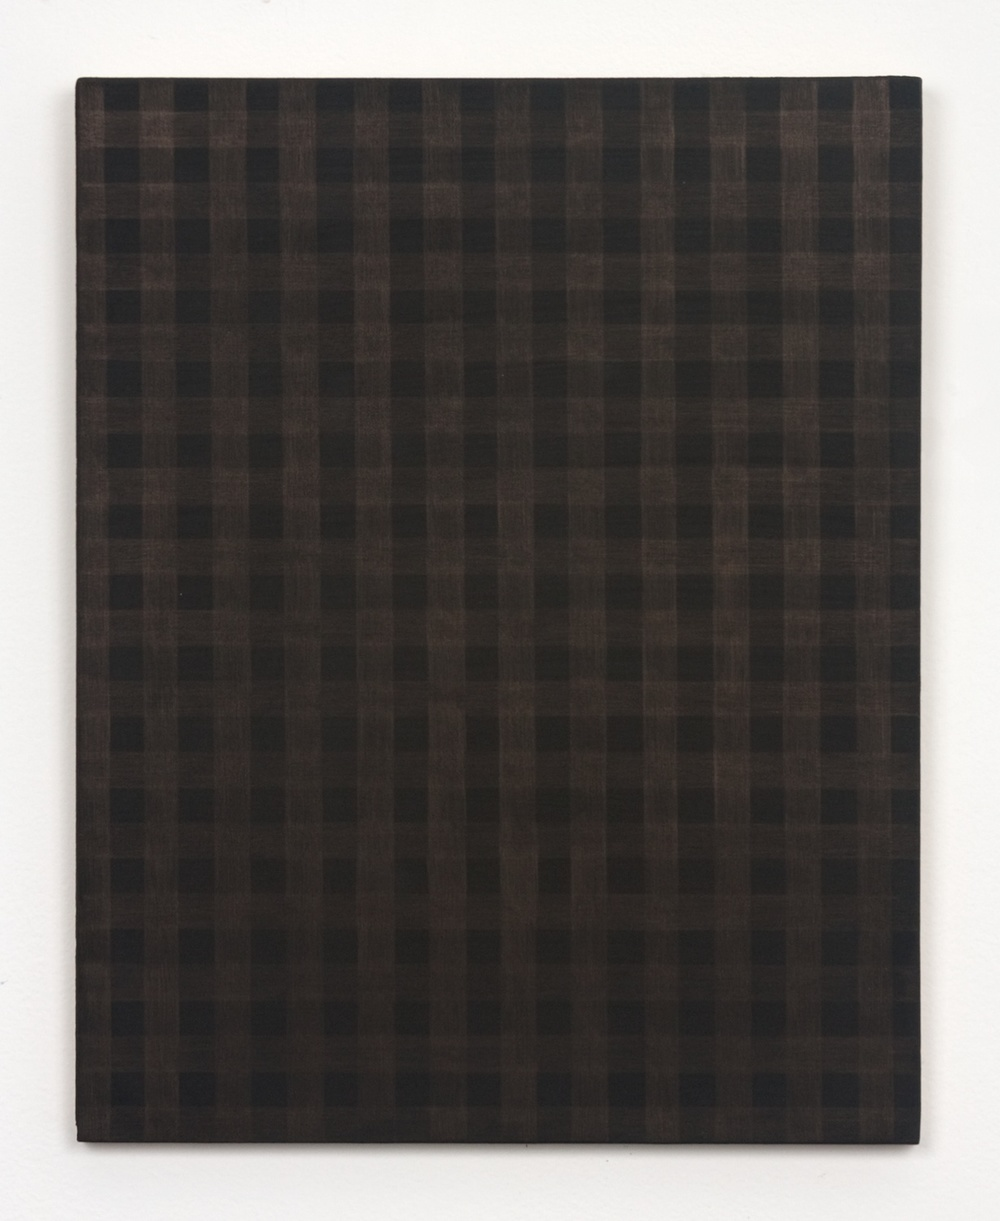 Michelle Grabner  Untitled  2010 Gold and gesso on panel 15h x 12w in MGrab183